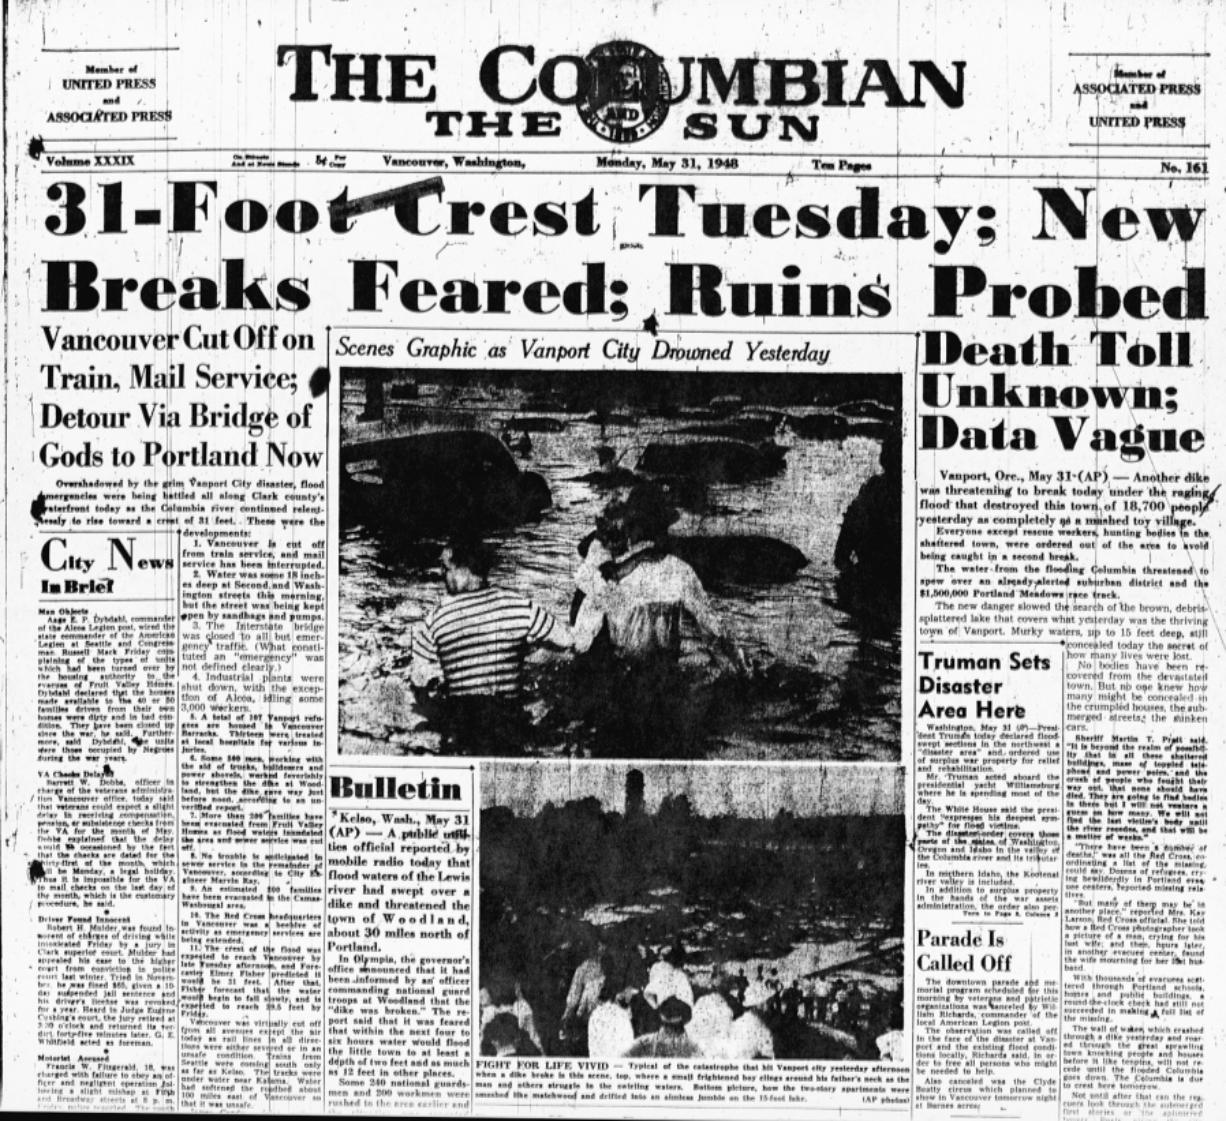 The front page of The Columbian on May 31, 1948.